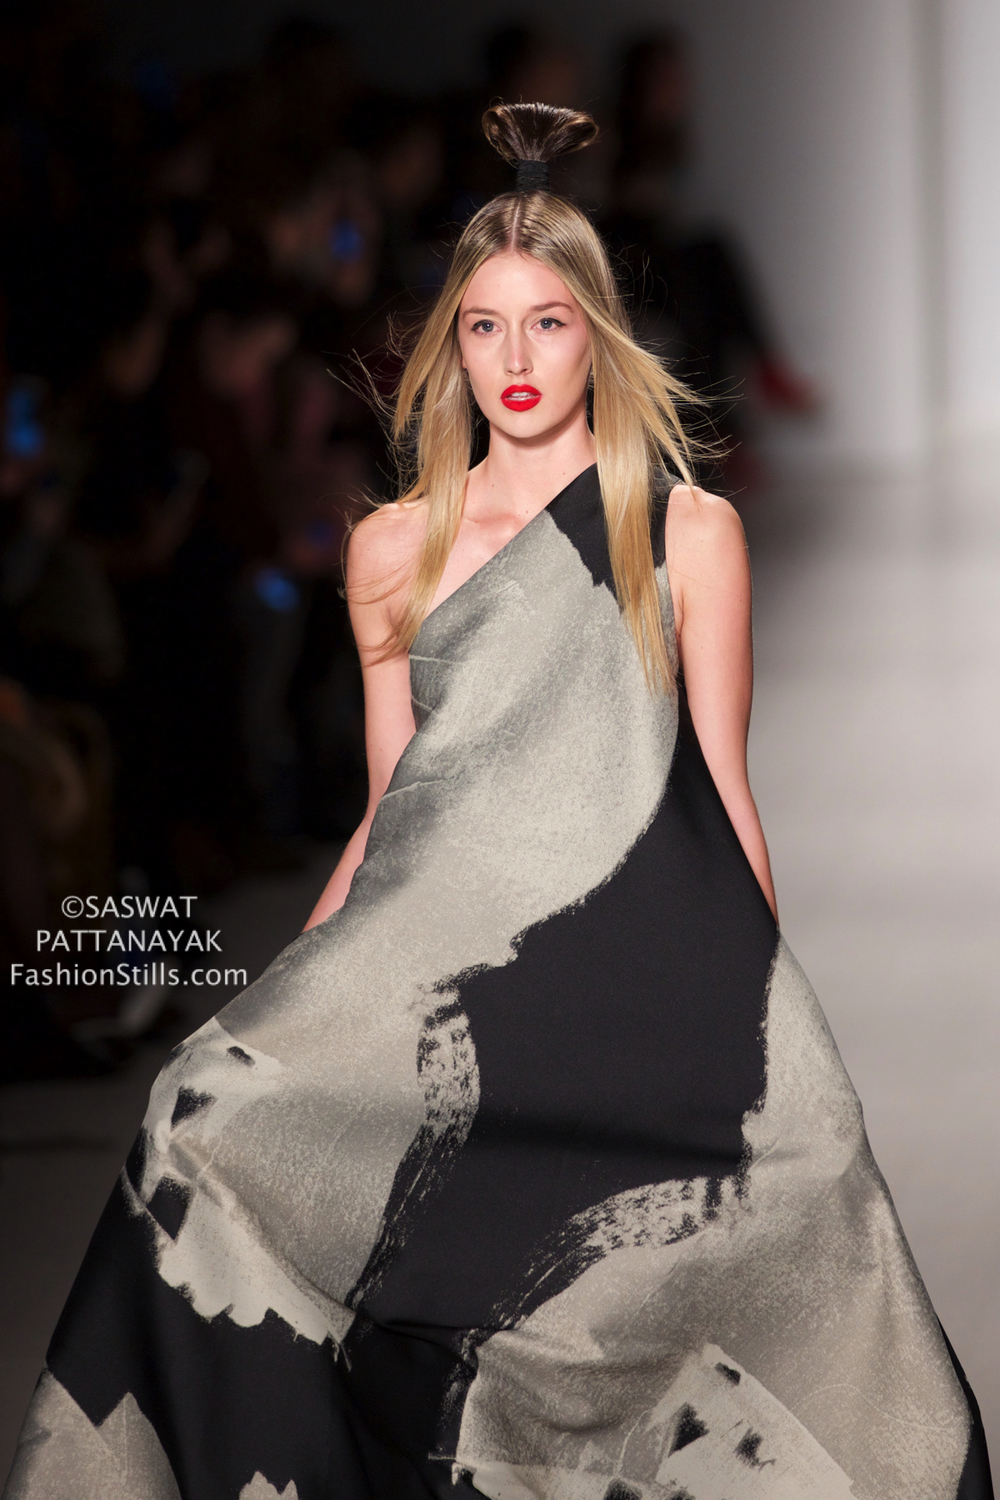 Saswat-Michael-Costello34.jpg